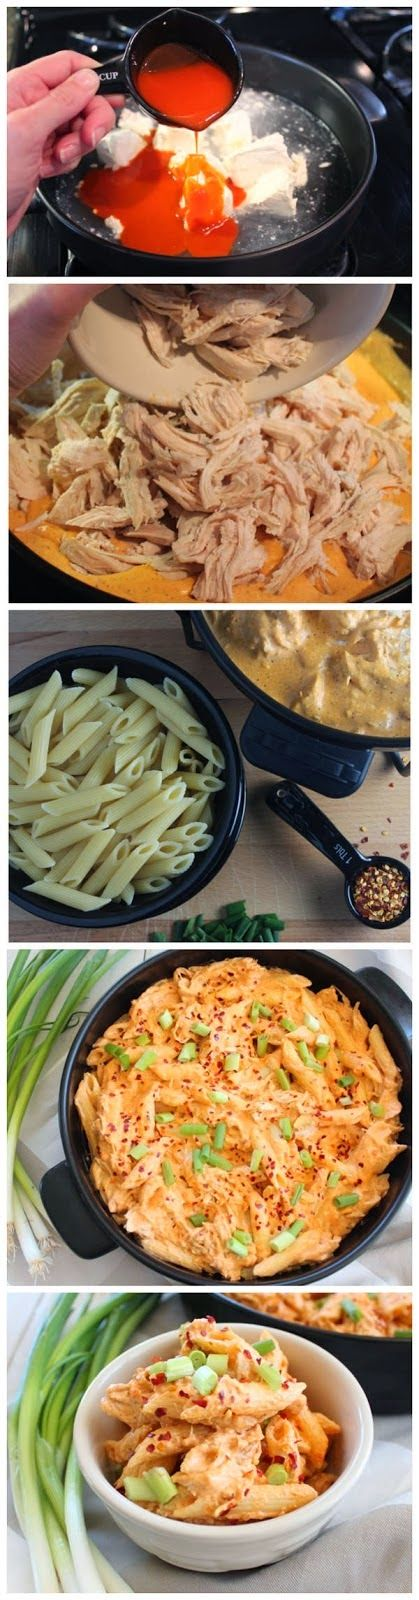 Buffalo Chicken Cheesy Penne Pasta Recipe